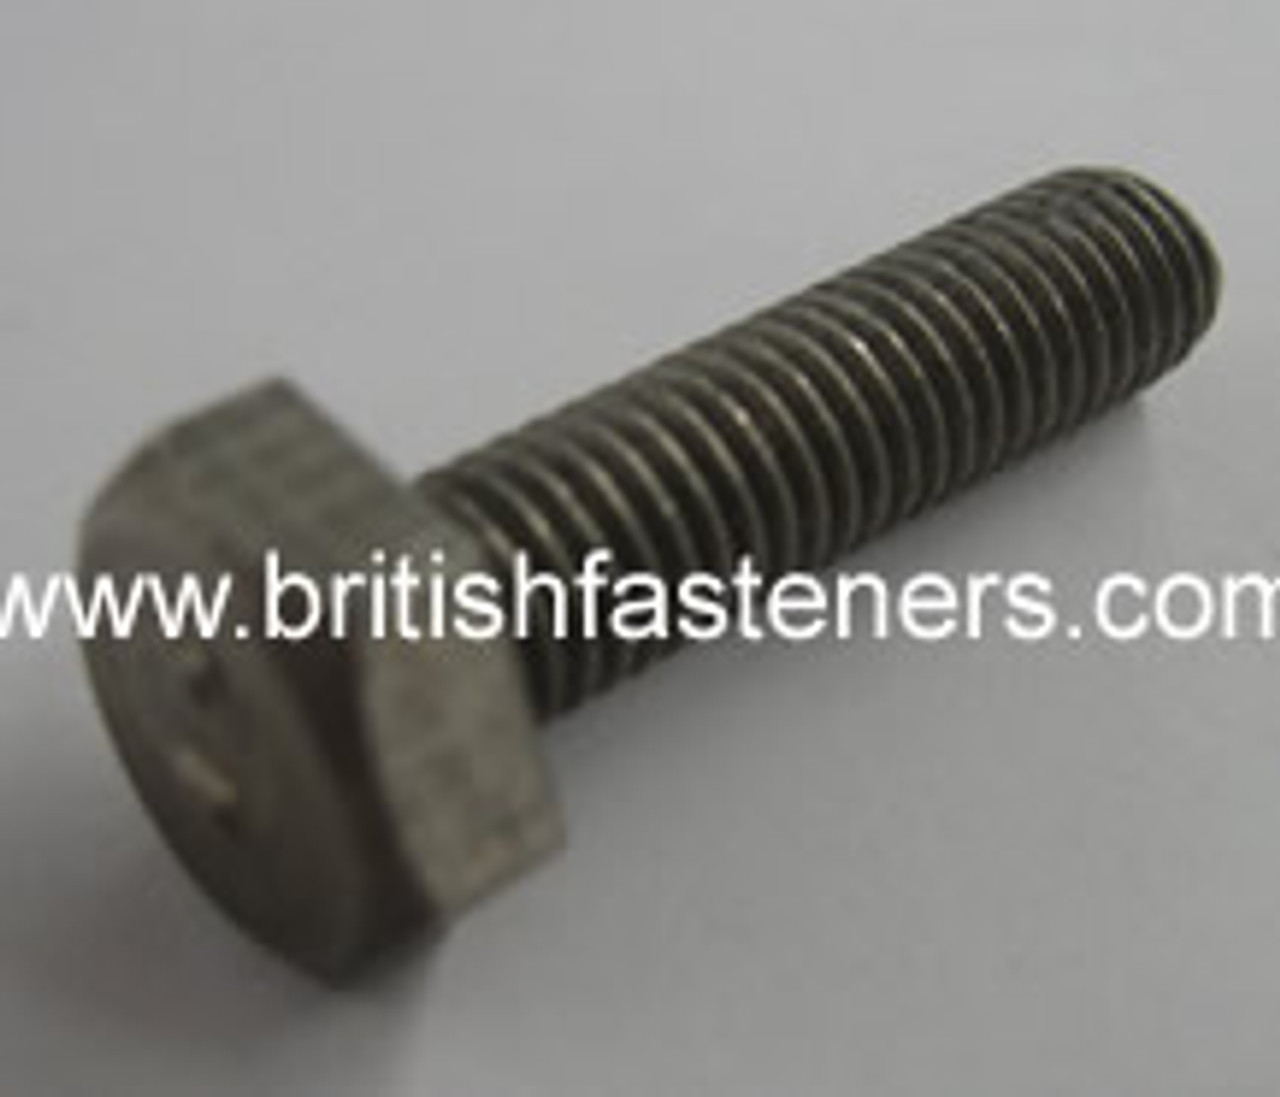 "Stainless Screw BSF/BSC Hex 1/4 x 1/2"" - (6315)"